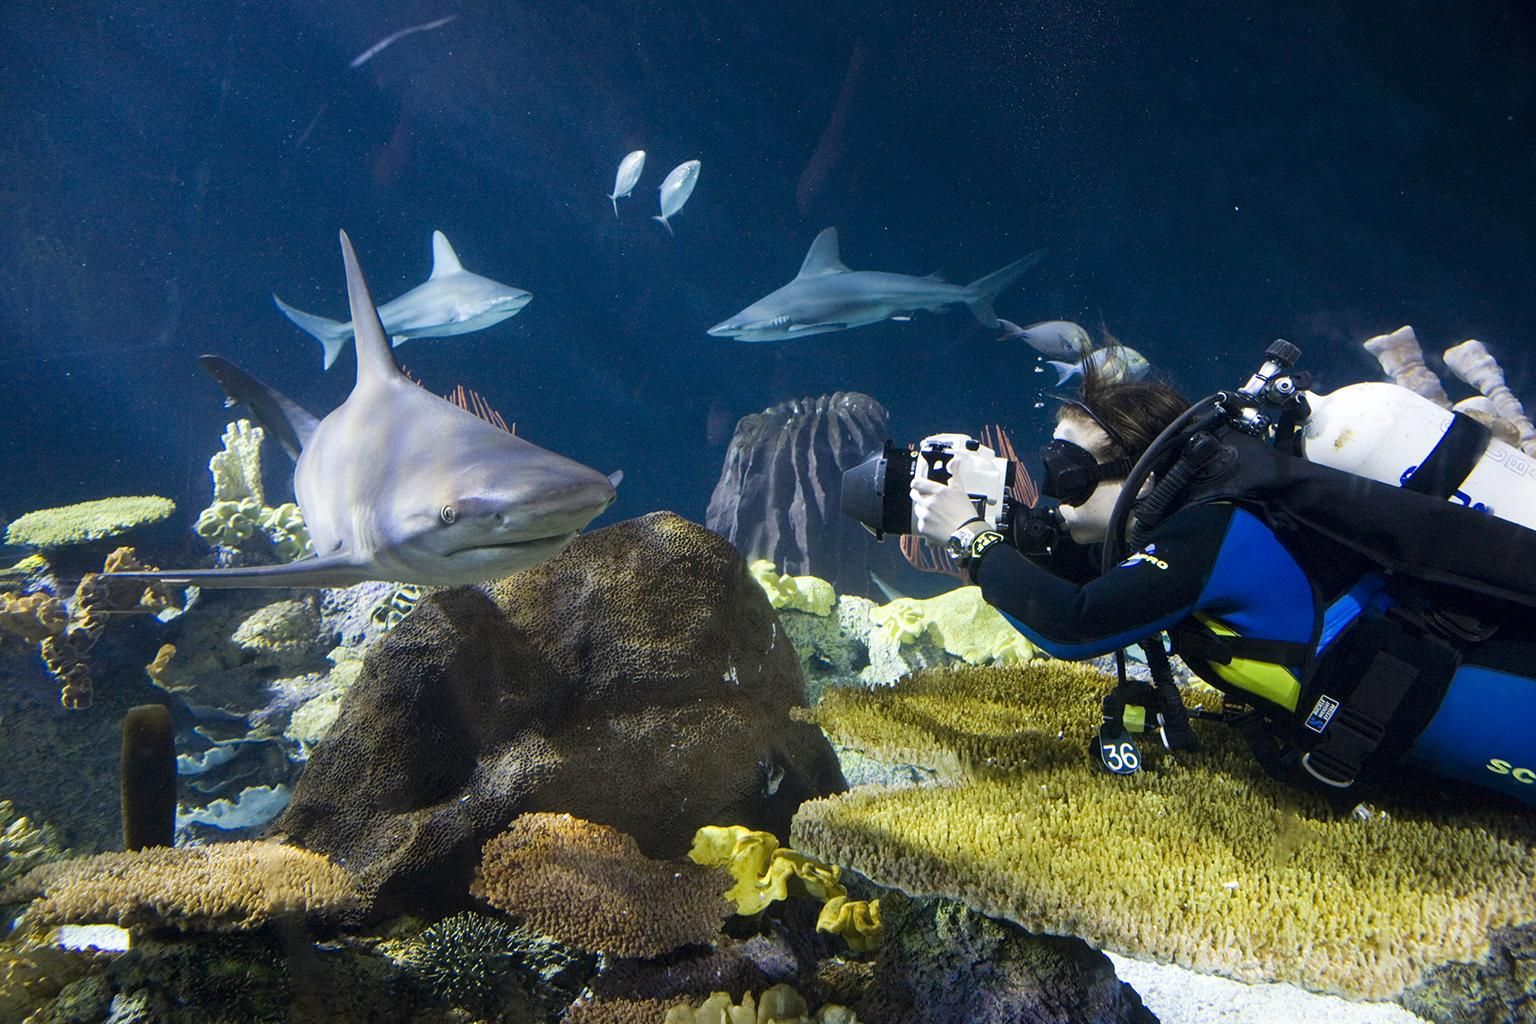 Shedd Aquarium's Brenna Hernandez photographs a sandbar shark in the aquarium's Wild Reef exhibit. (Courtesy Shedd Aquarium)